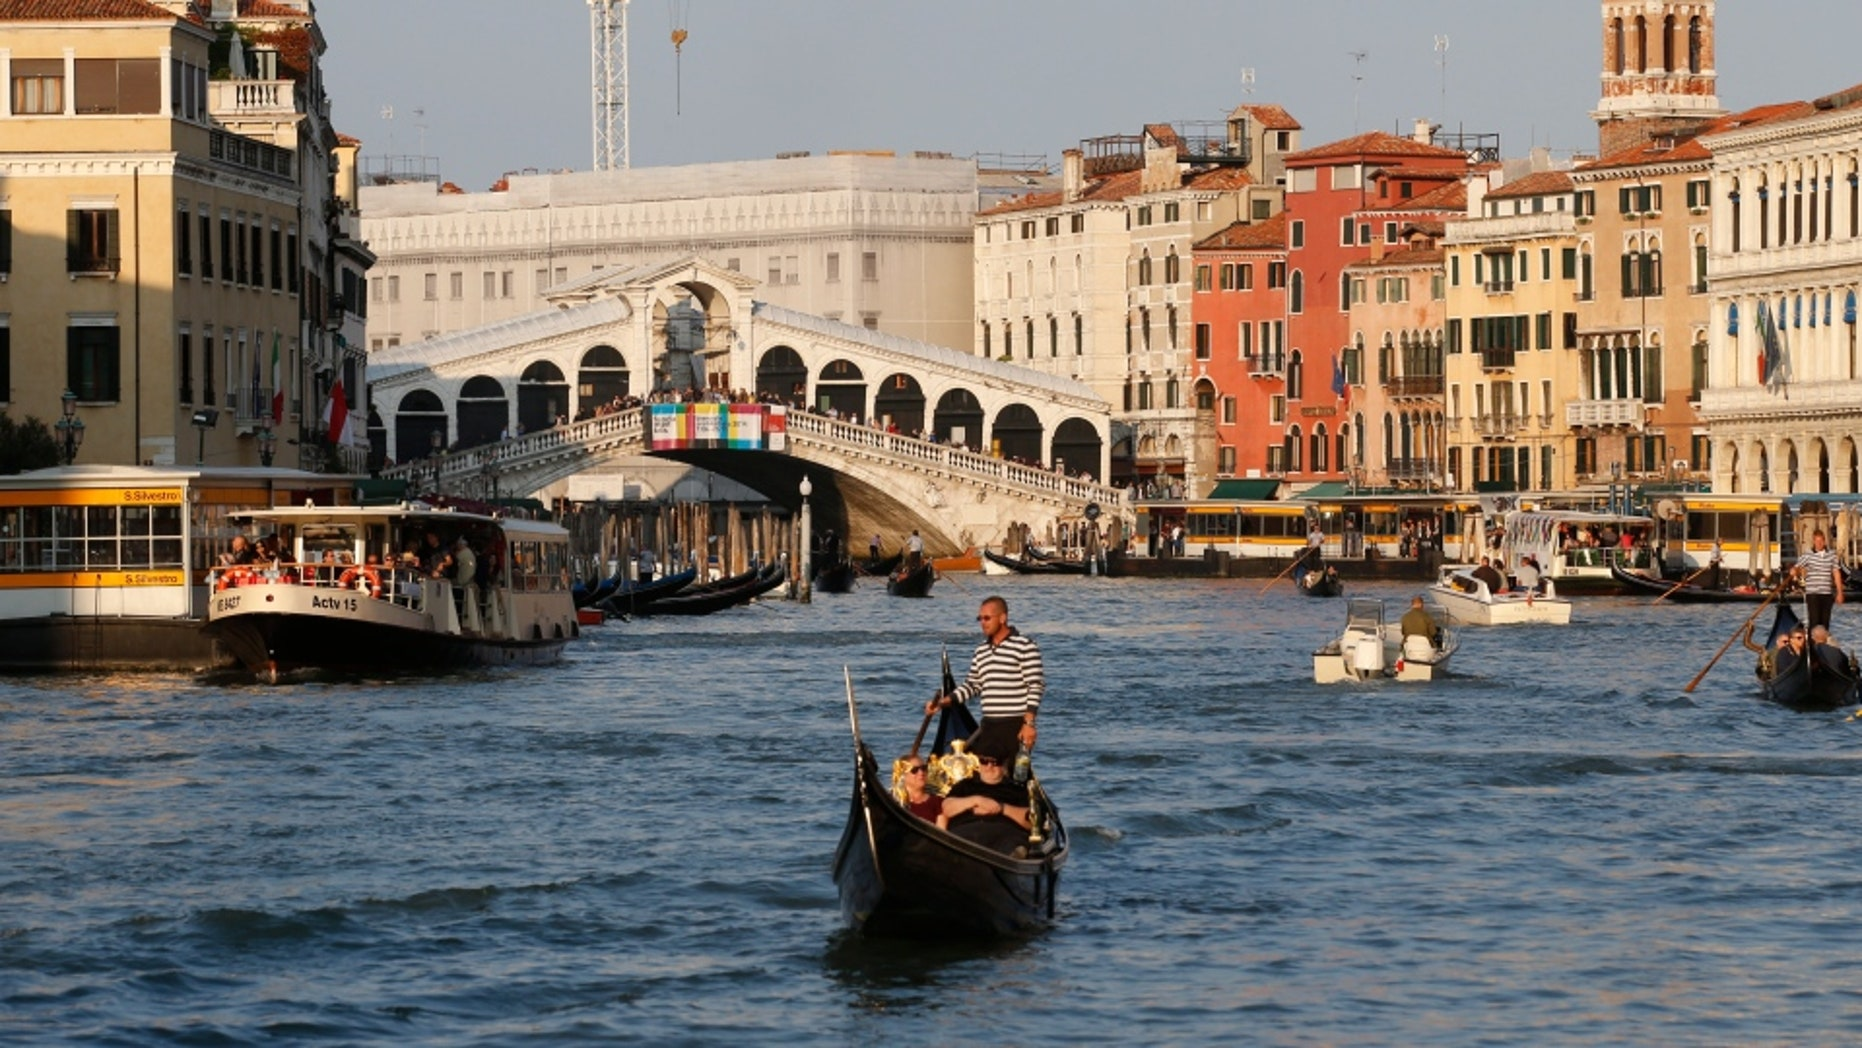 A New Zealand tourist jumped off The Rialto Bridge Friday. The bridge, built in 1591, is one of the most popular spots in the World Heritage city.